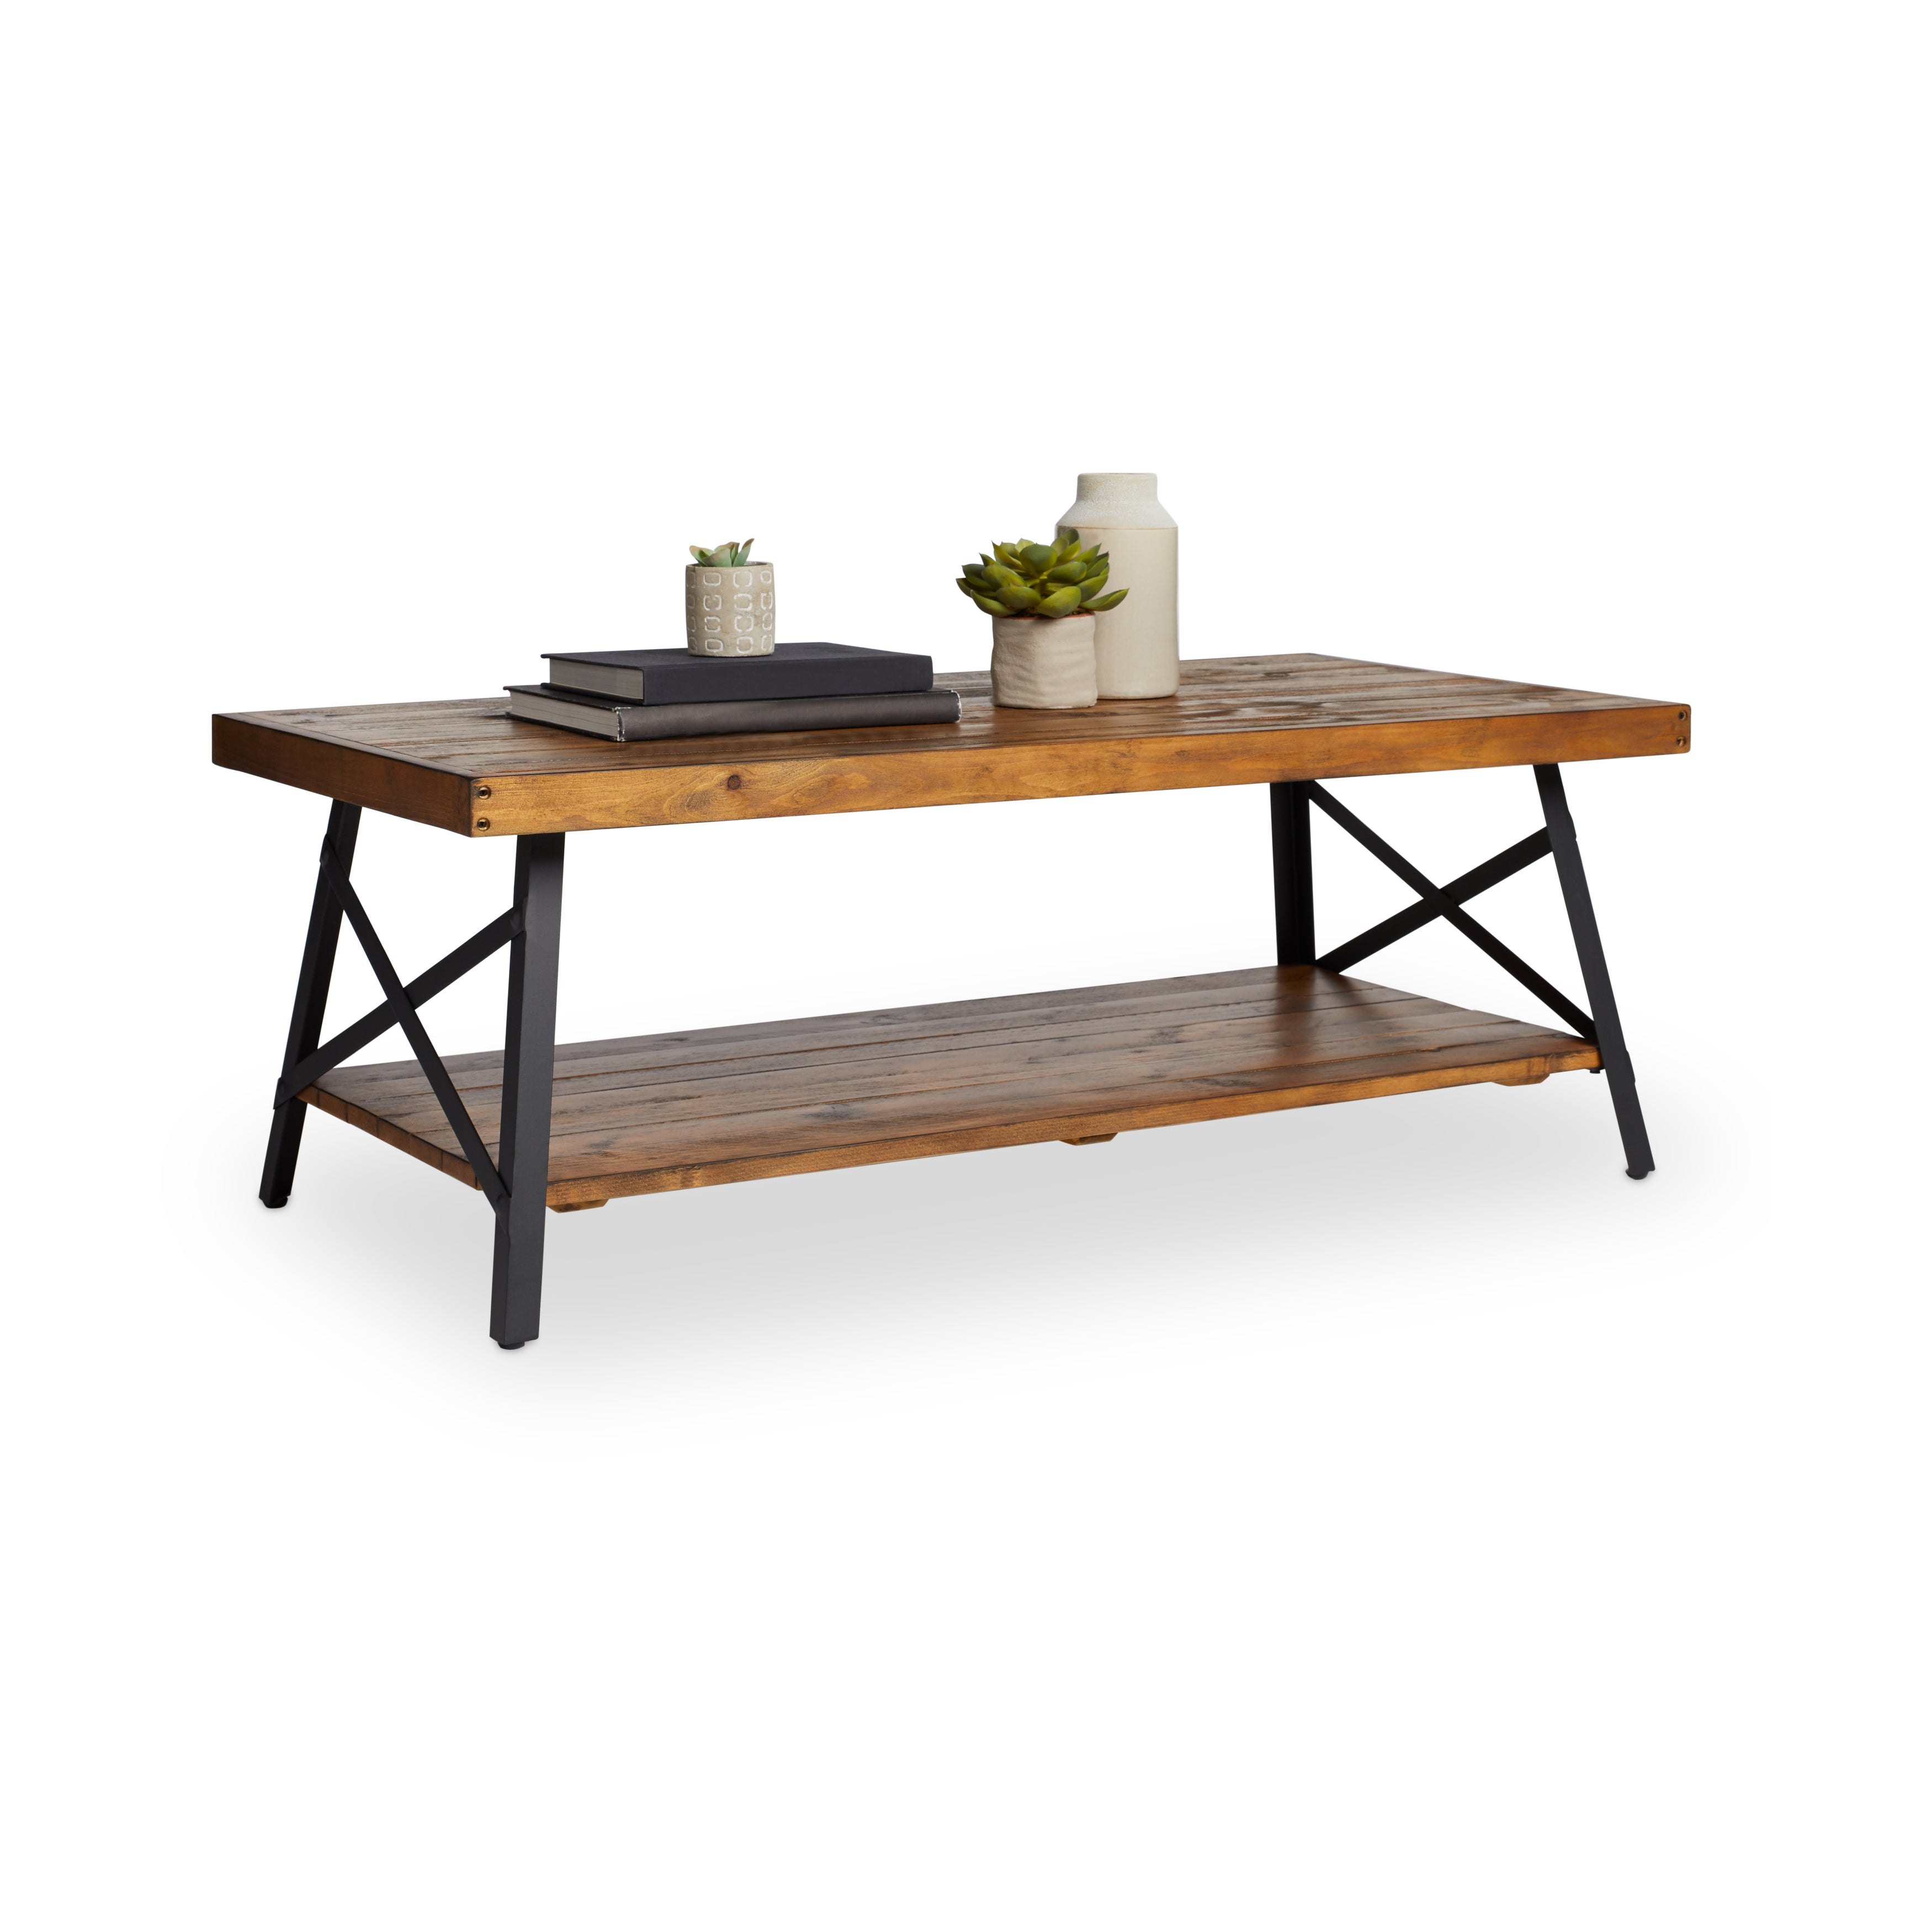 Shop Pine Canopy Kaibab Modern Rustic Wood Coffee Table   Free Shipping  Today   Overstock.com   20253954